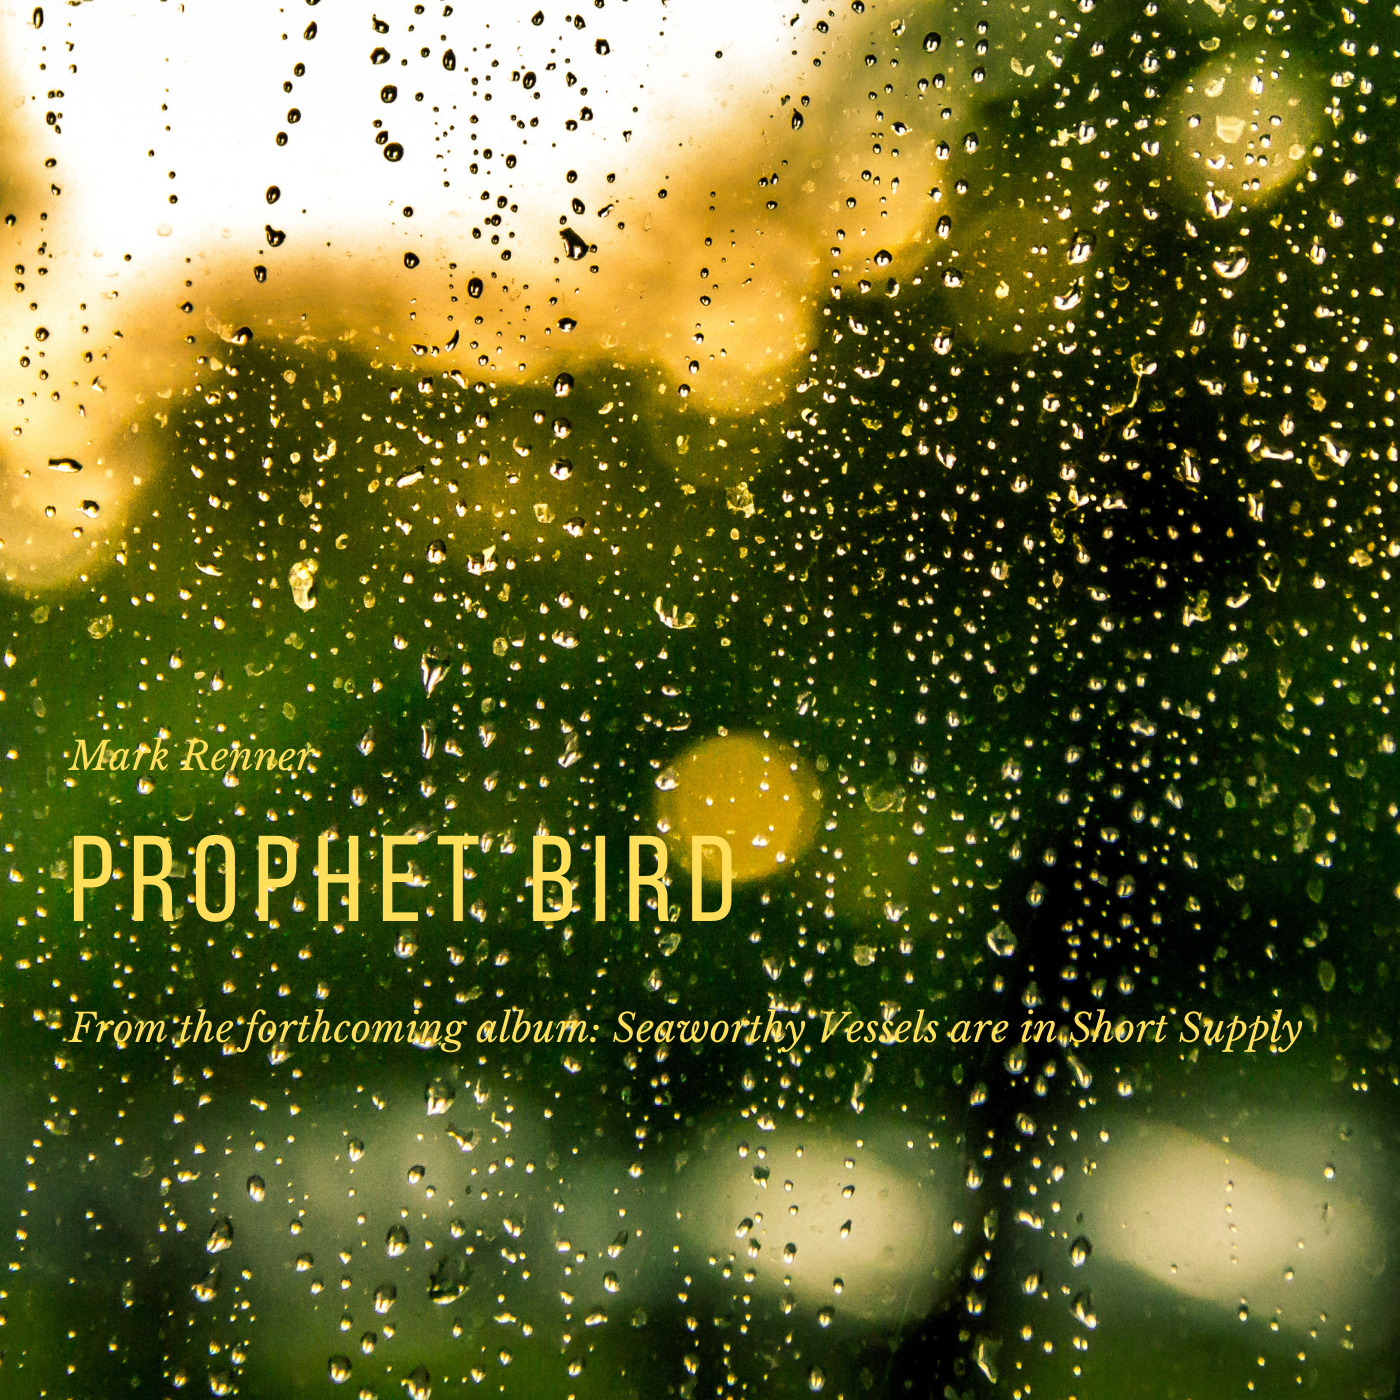 26 October 2019- Prophet Bird   is the lead-in single taken from Mark's forthcoming album:   Seaworthy Vessels are in Short Supply .  The song is available now to preorder from        Bandcamp     ,   as one of four songs featured on the   Prophet Bird EP  , three of which are exclusive to this release. All four songs are available on the limited edition cd, with full- color jacket. Included with the preorder- an immediate download of the single, and the rest of the material becomes available at the end of November, and will eventually feature on iTunes, Amazon and the usual streaming/ dl sources.